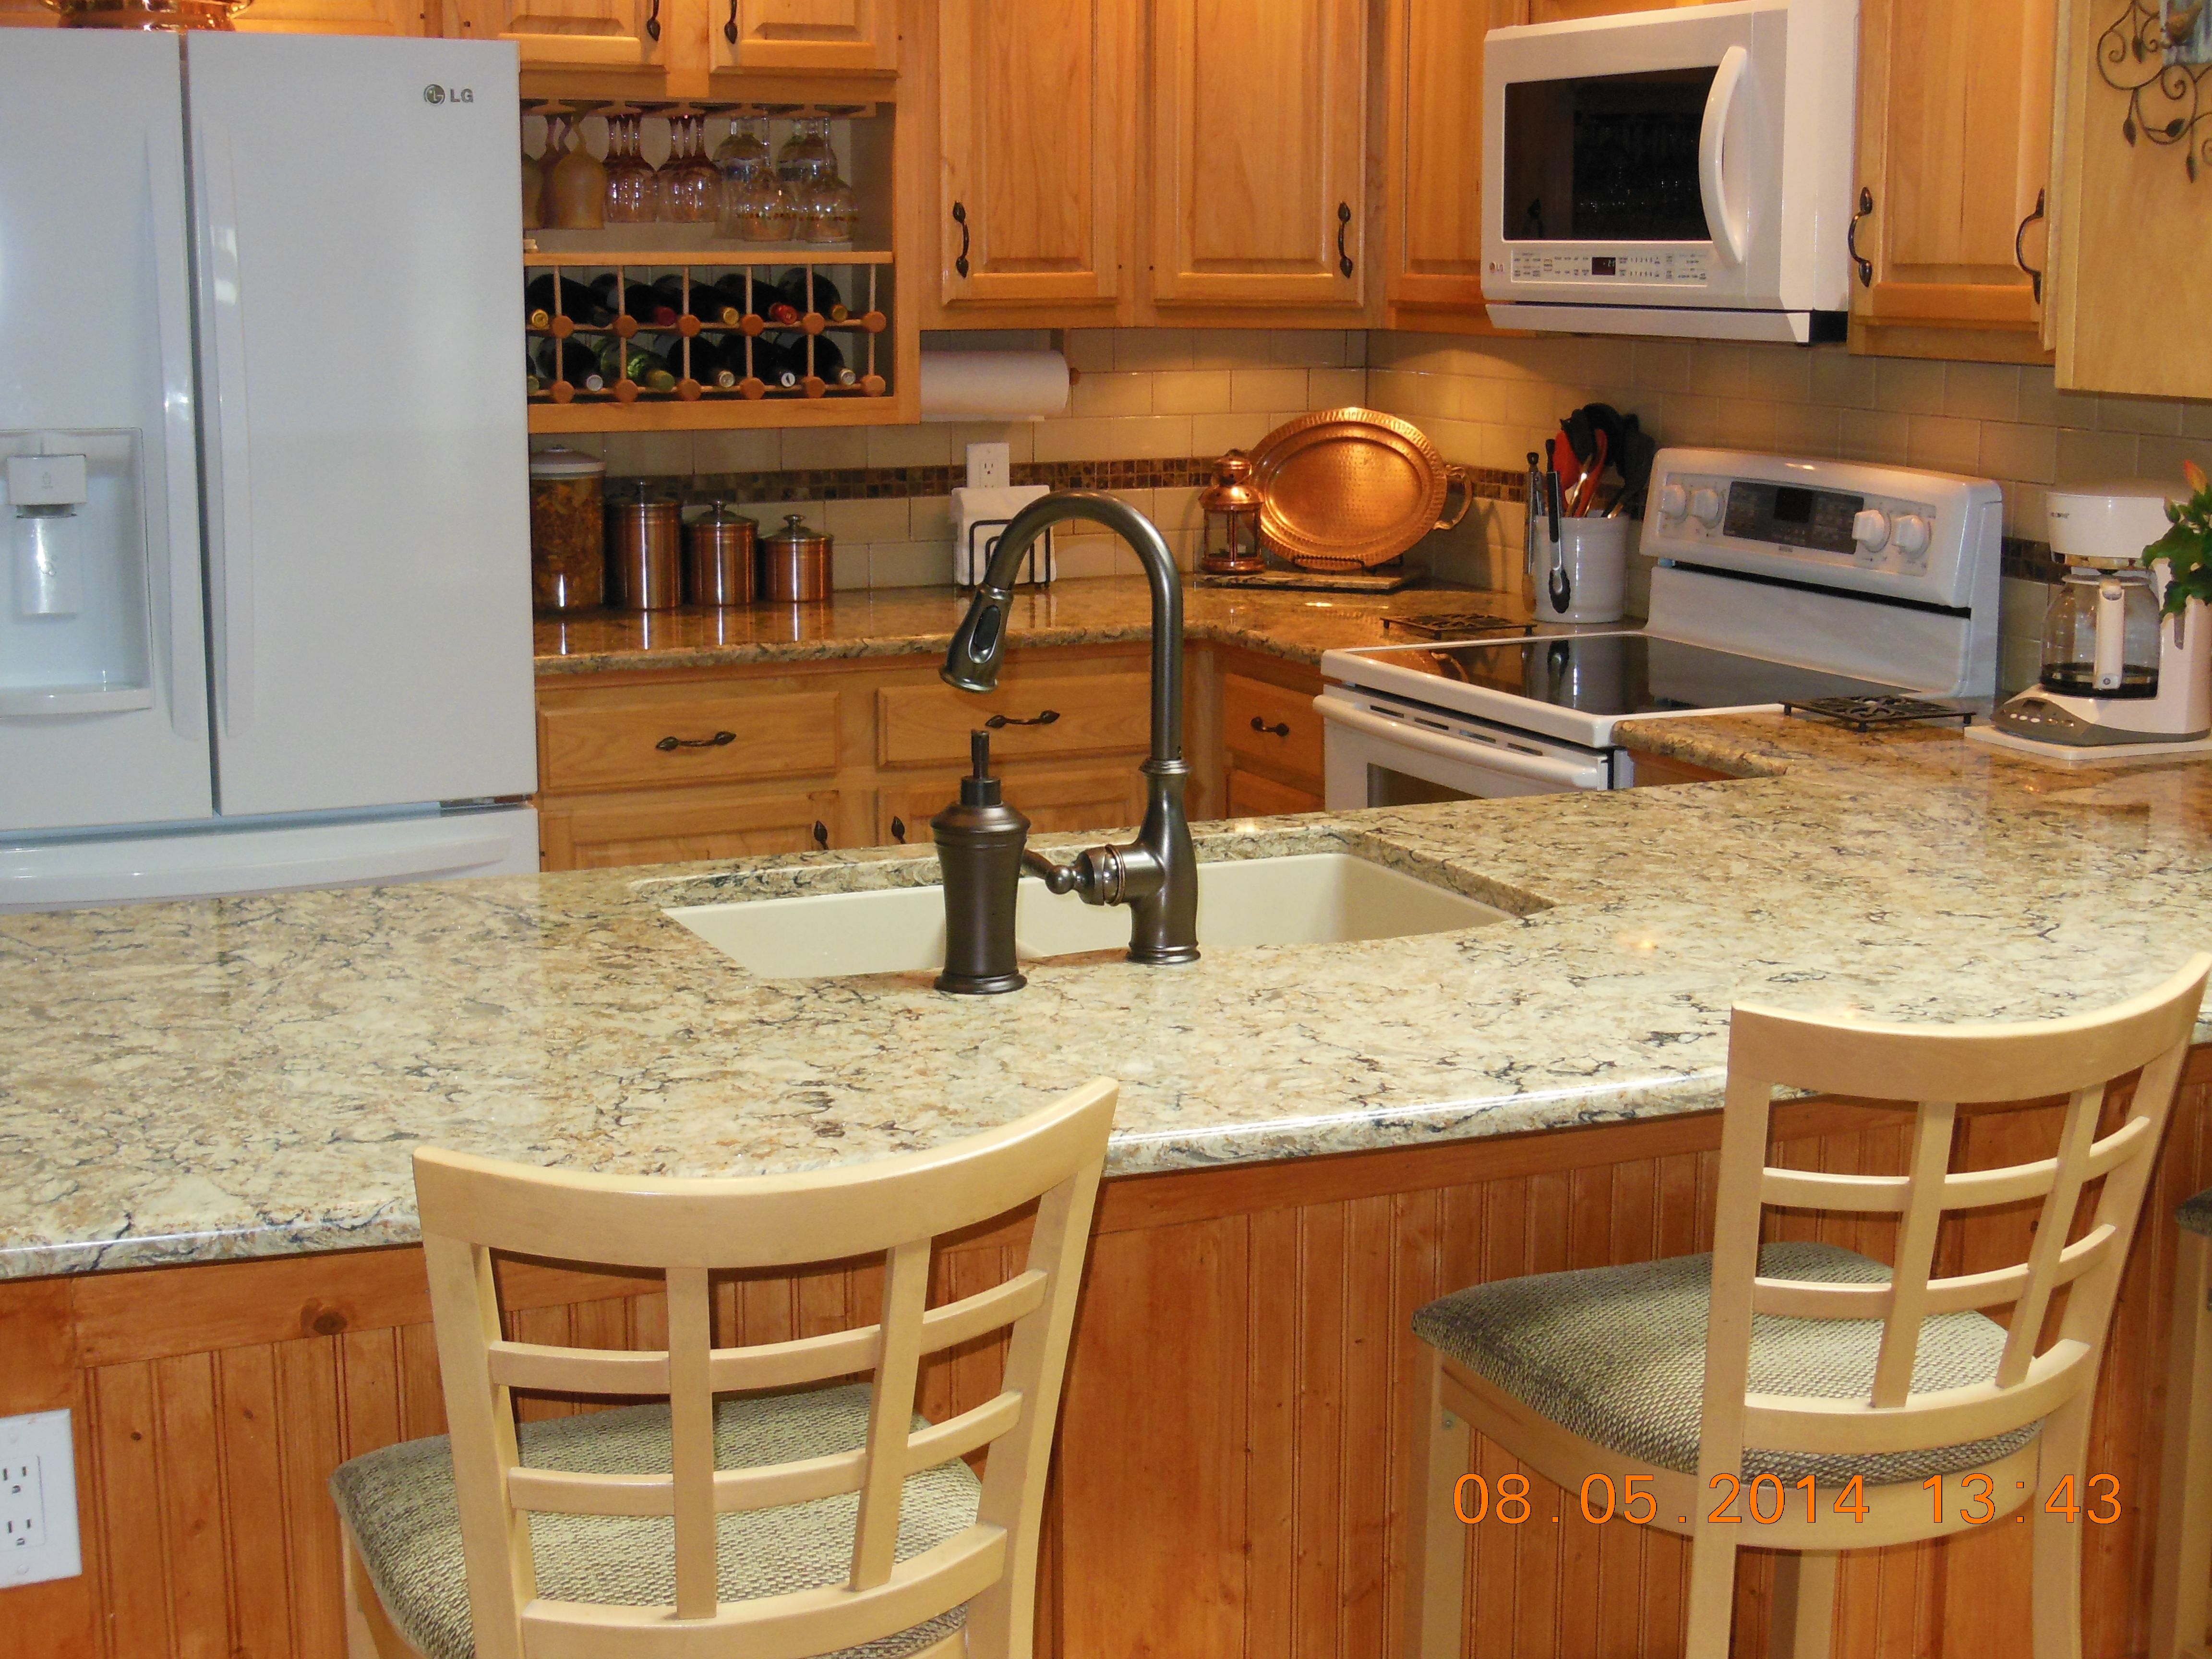 We got Cambria countertop in Bradshaw with our white